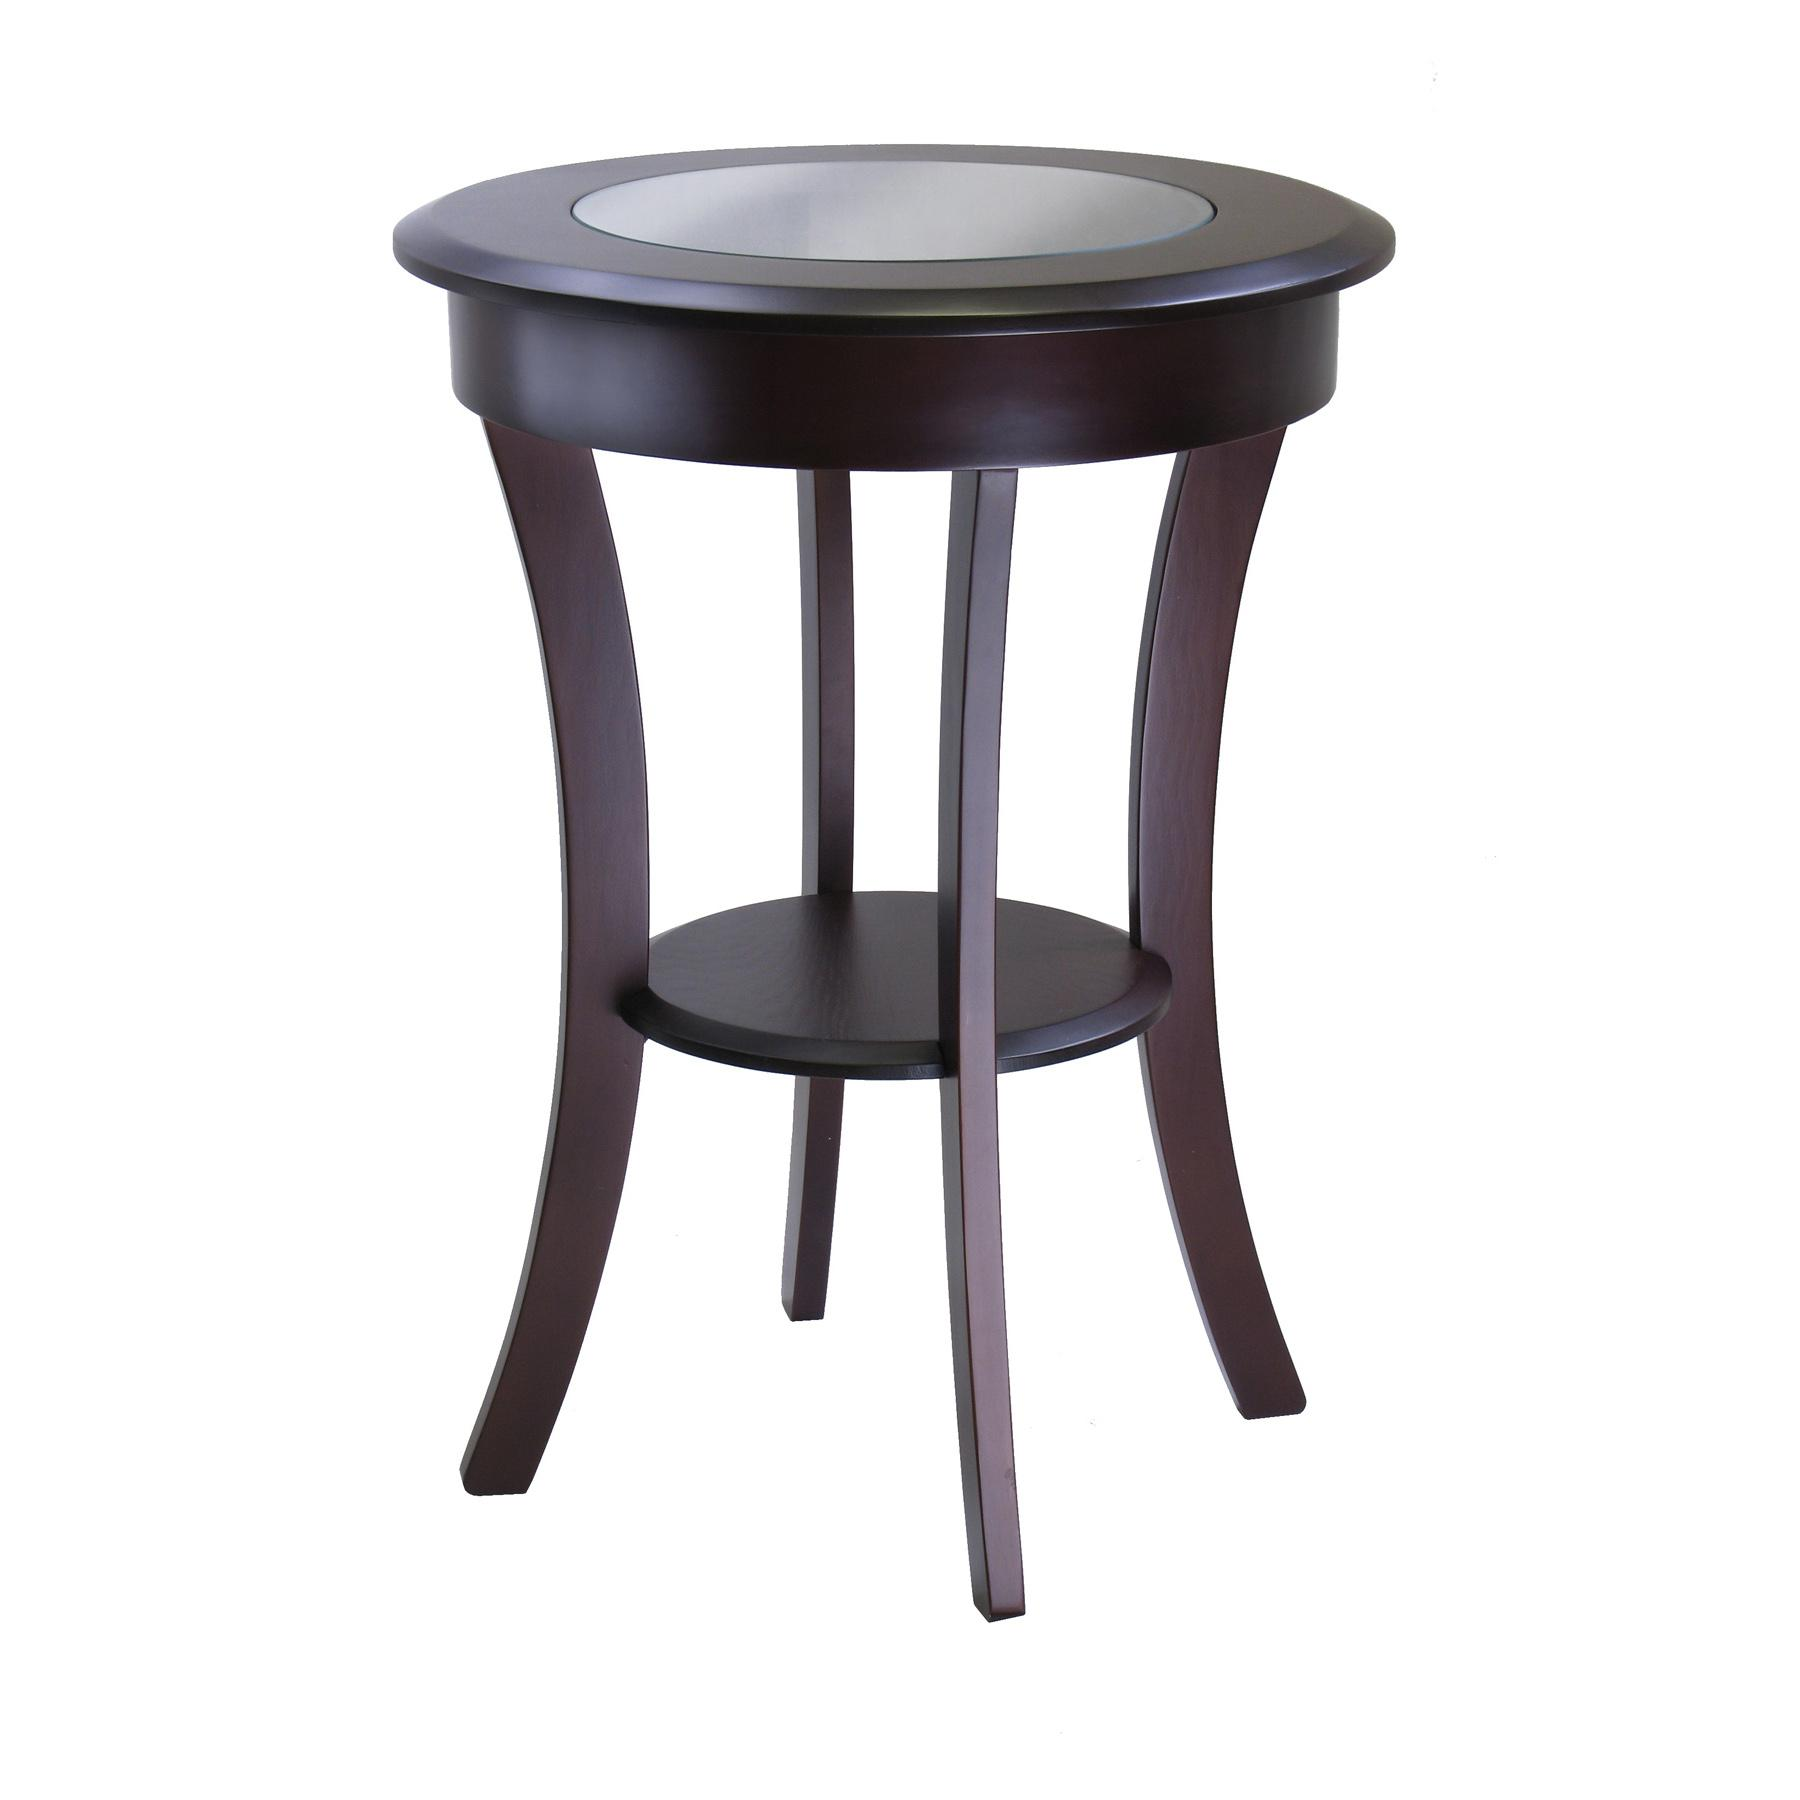 surprising inch tall round accent table decorating patio cover rentals chairs rent tablecloth and tables ideas small for stools covers kitchen with full size high top pottery barn